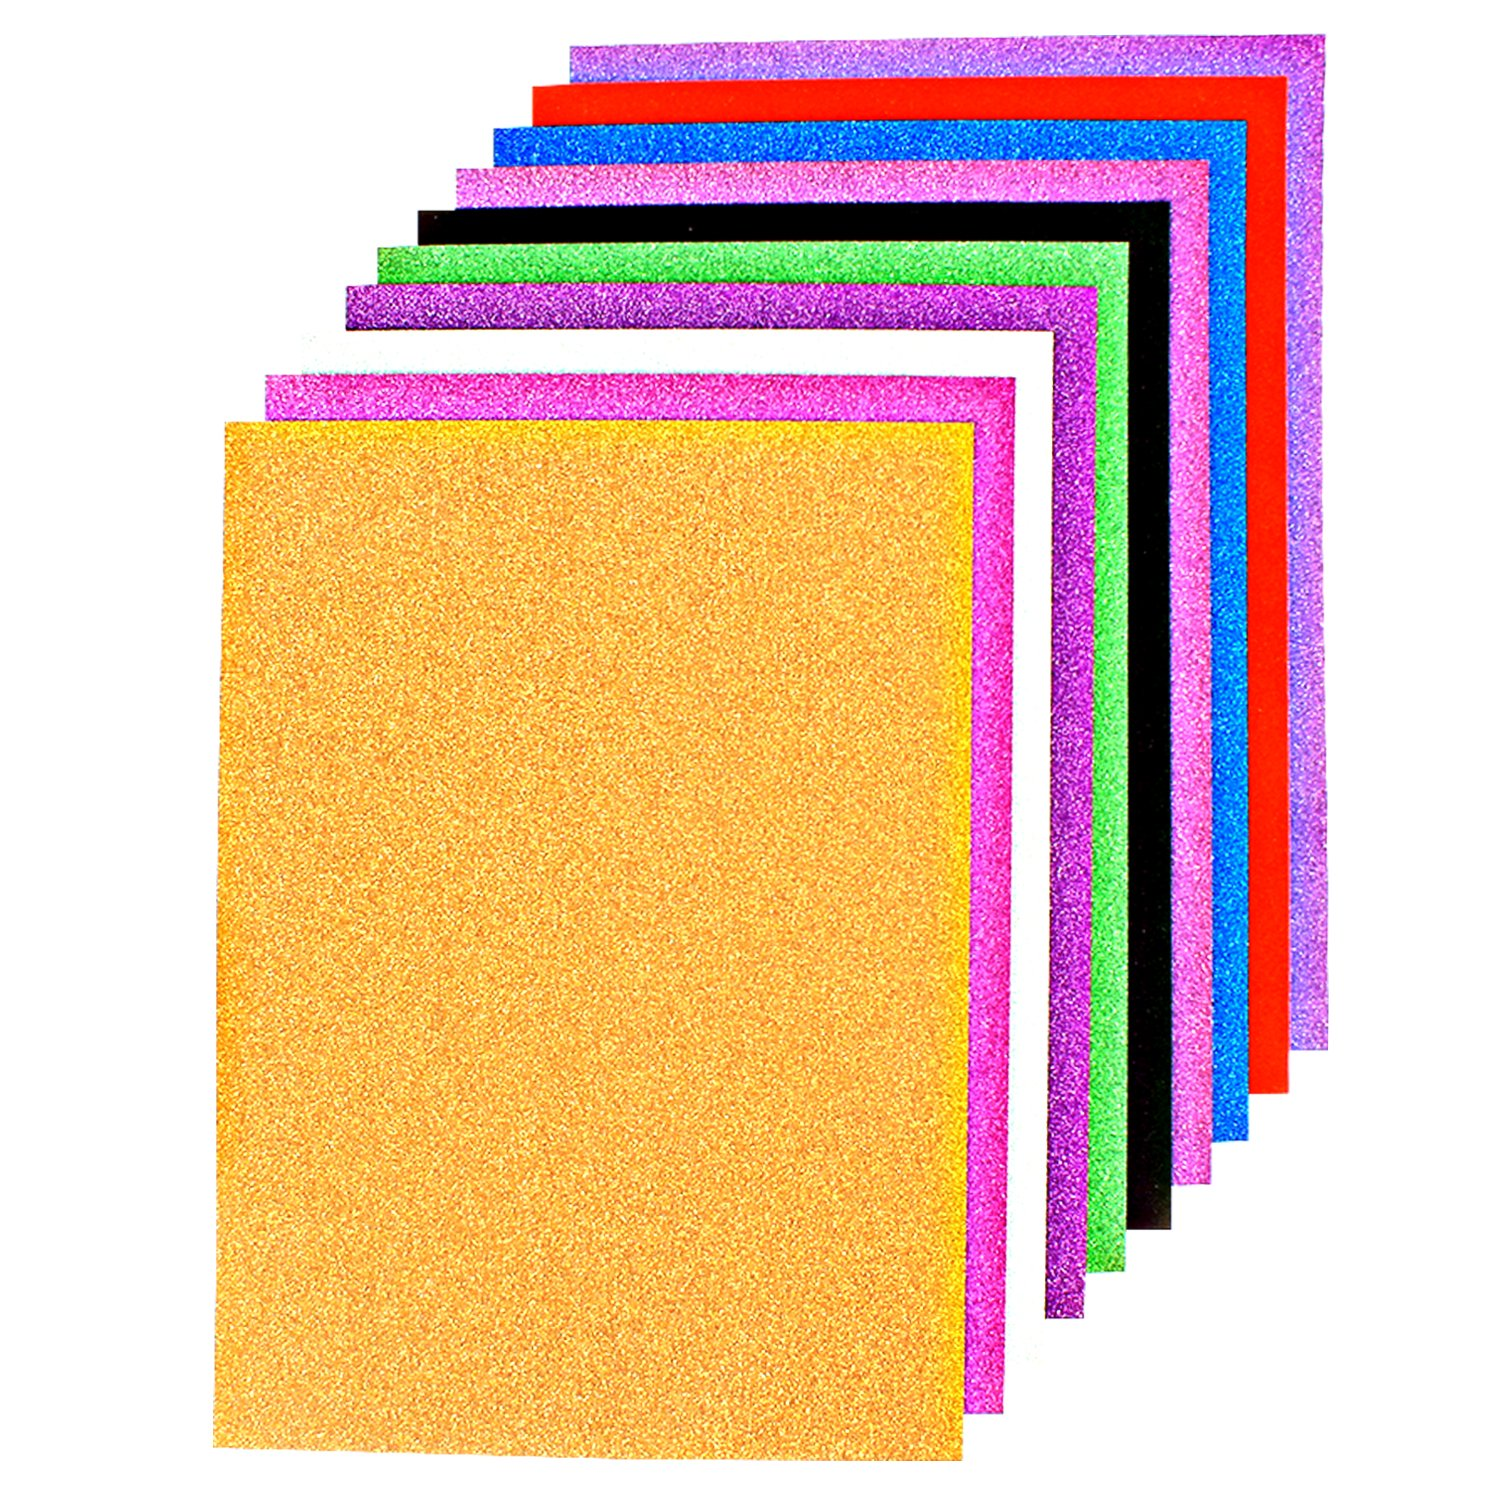 Coloured paper buy coloured paper online at best prices in india pigloo a4 size glitter paper for art and craft 250 gsm paperboard 10 jeuxipadfo Gallery